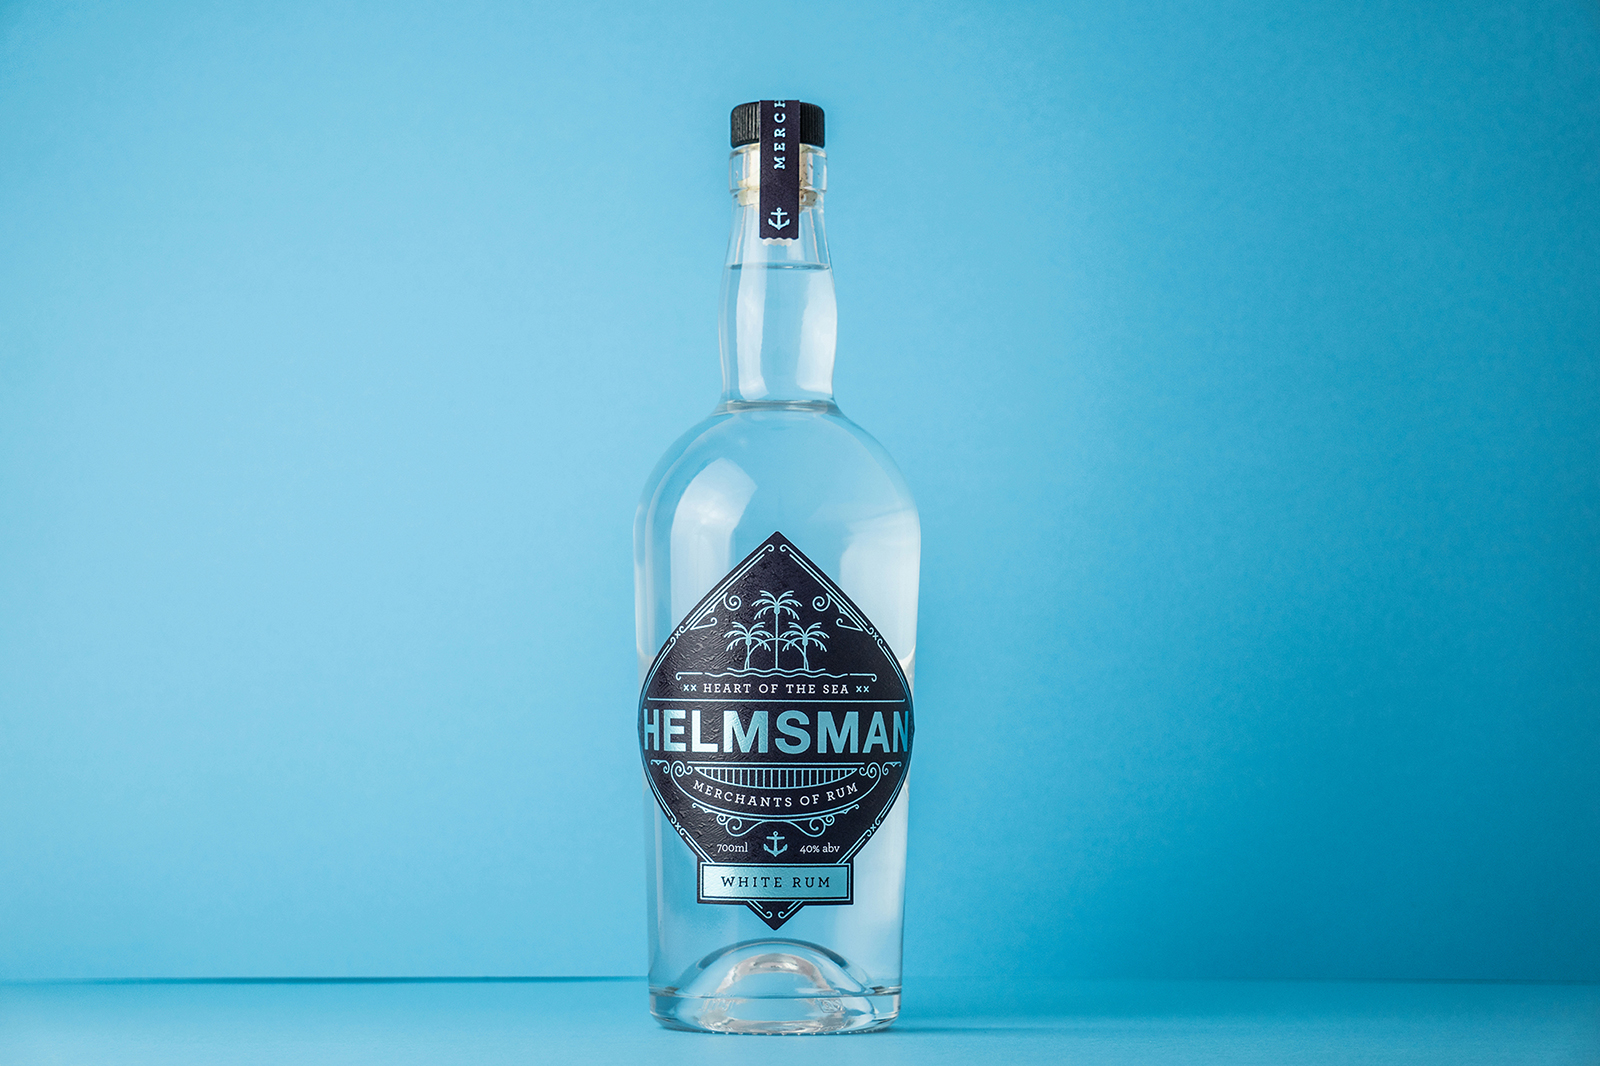 Helmsman Rum – For the Curious, The Seekers and The Explorers